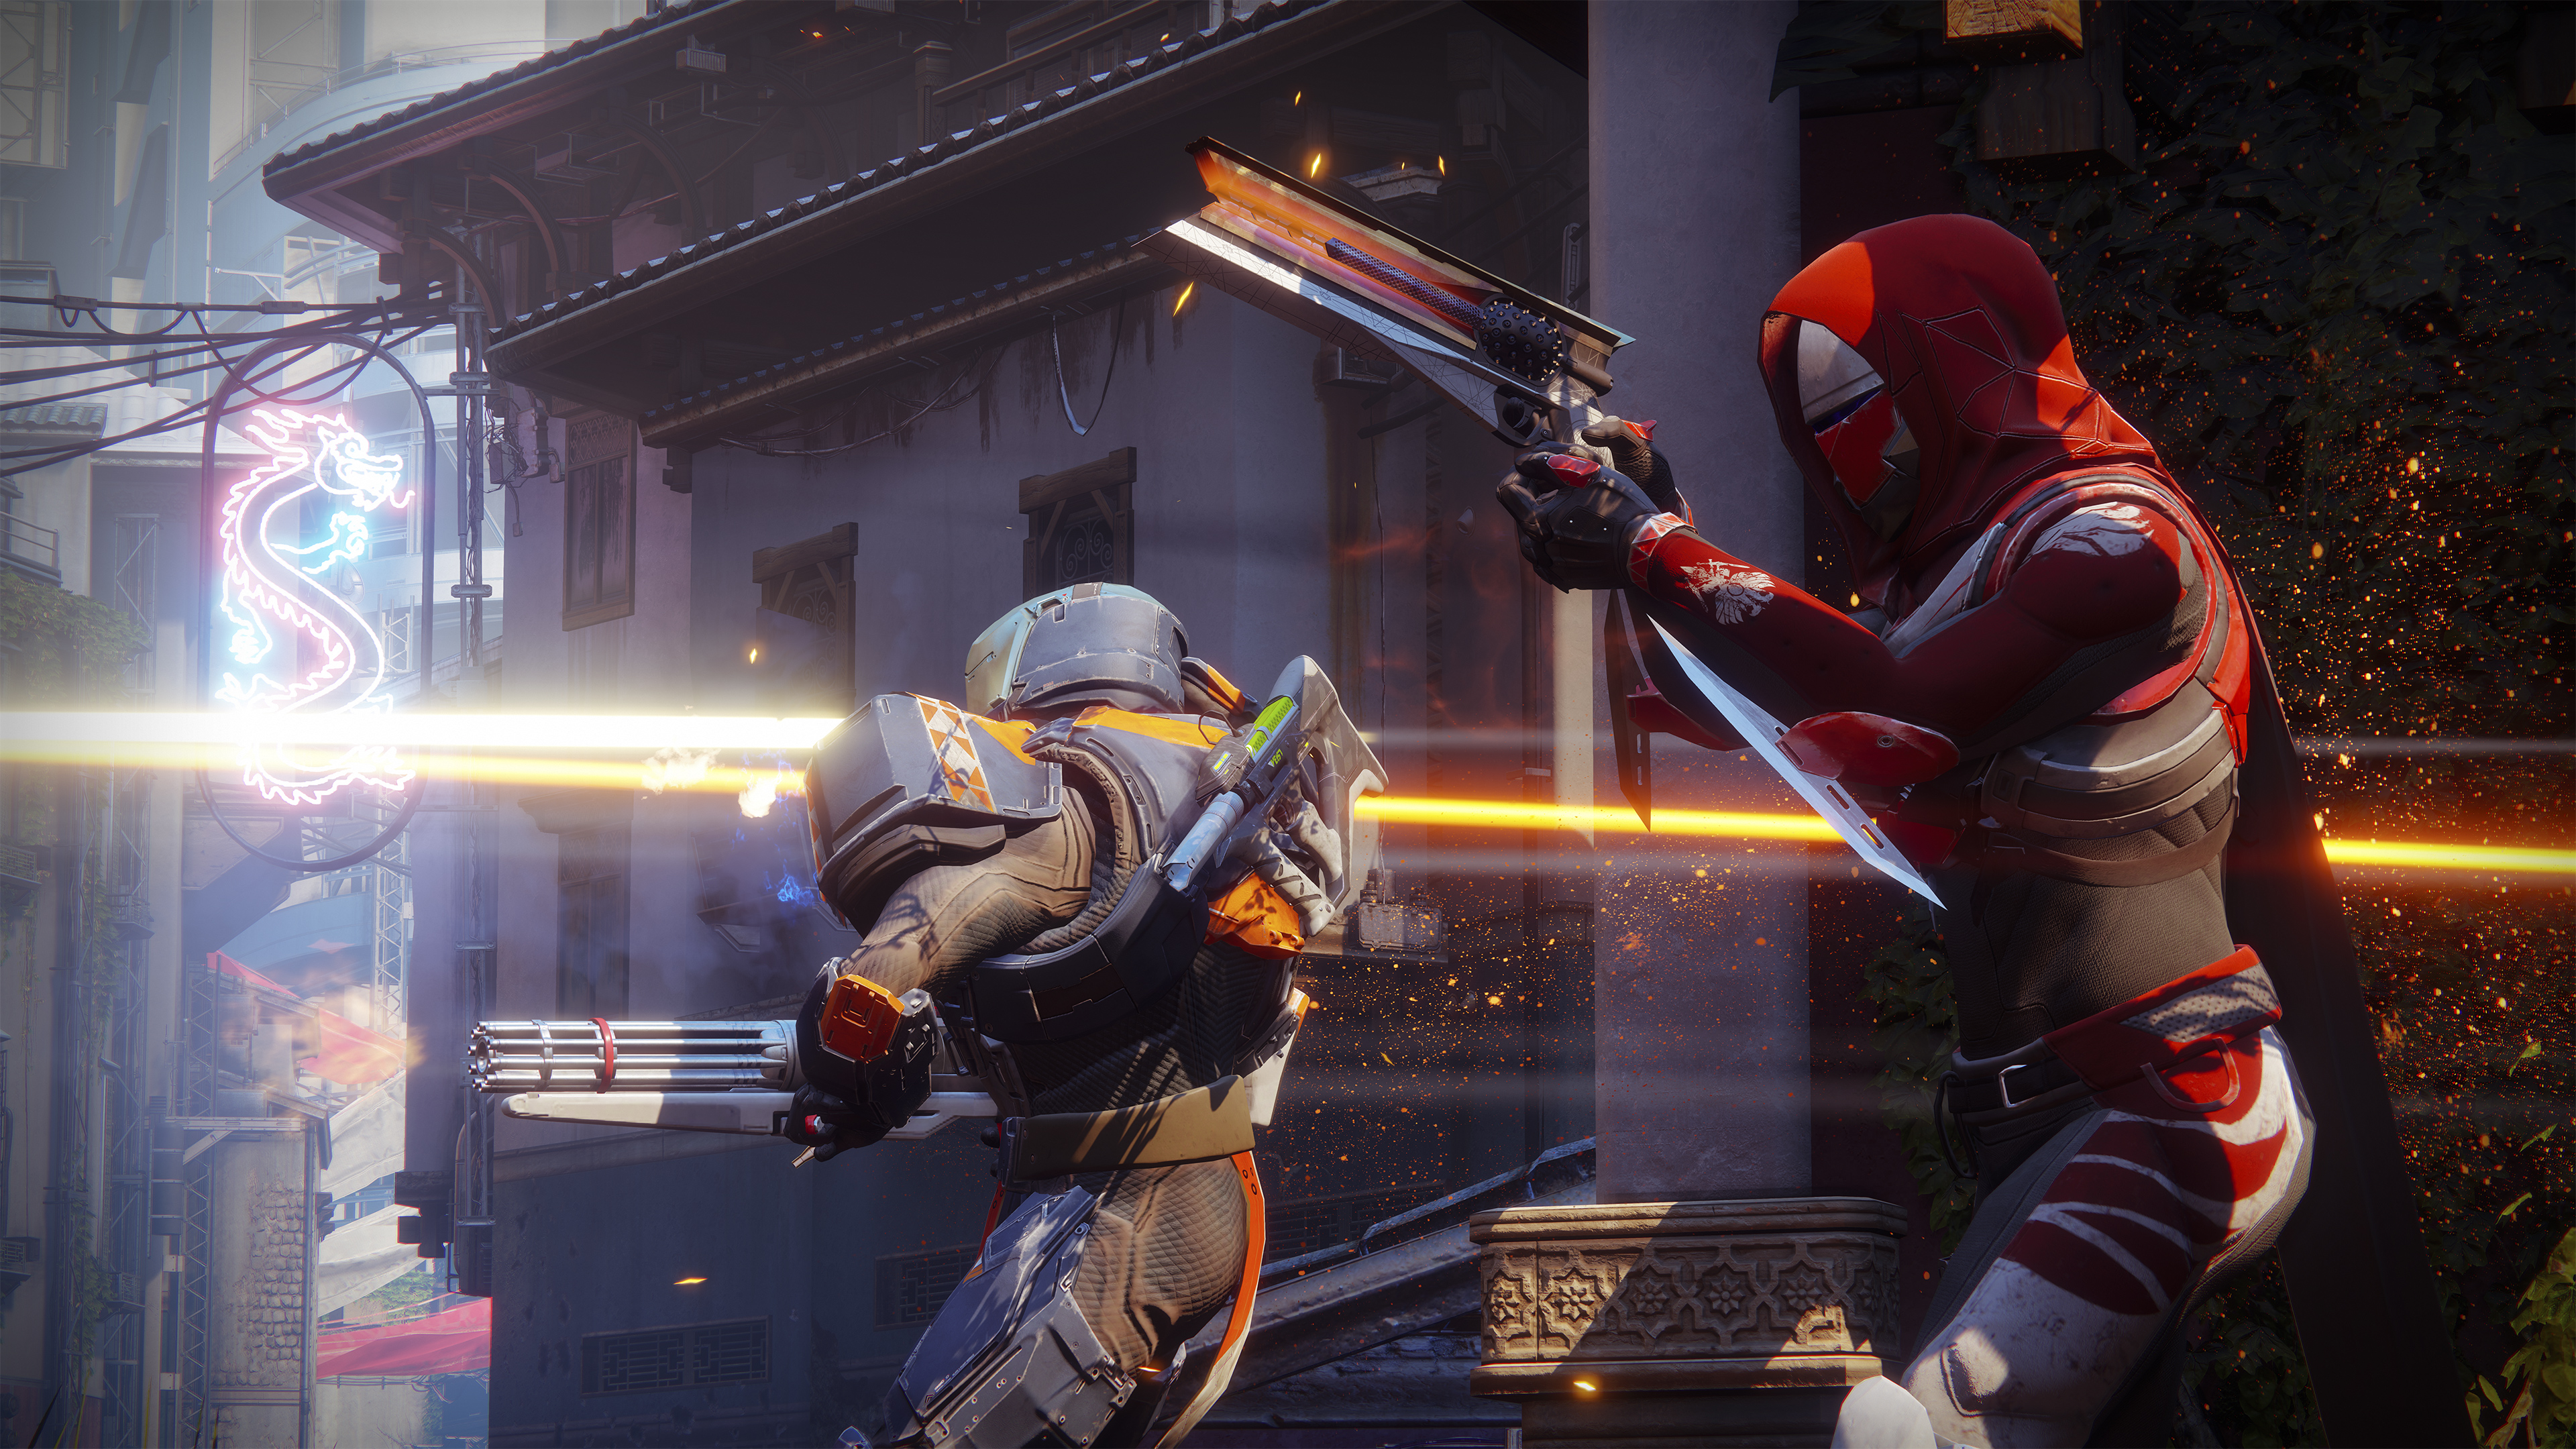 Bungie previews upcoming Destiny 2 nerfs to Striker and Dawnblade Supers